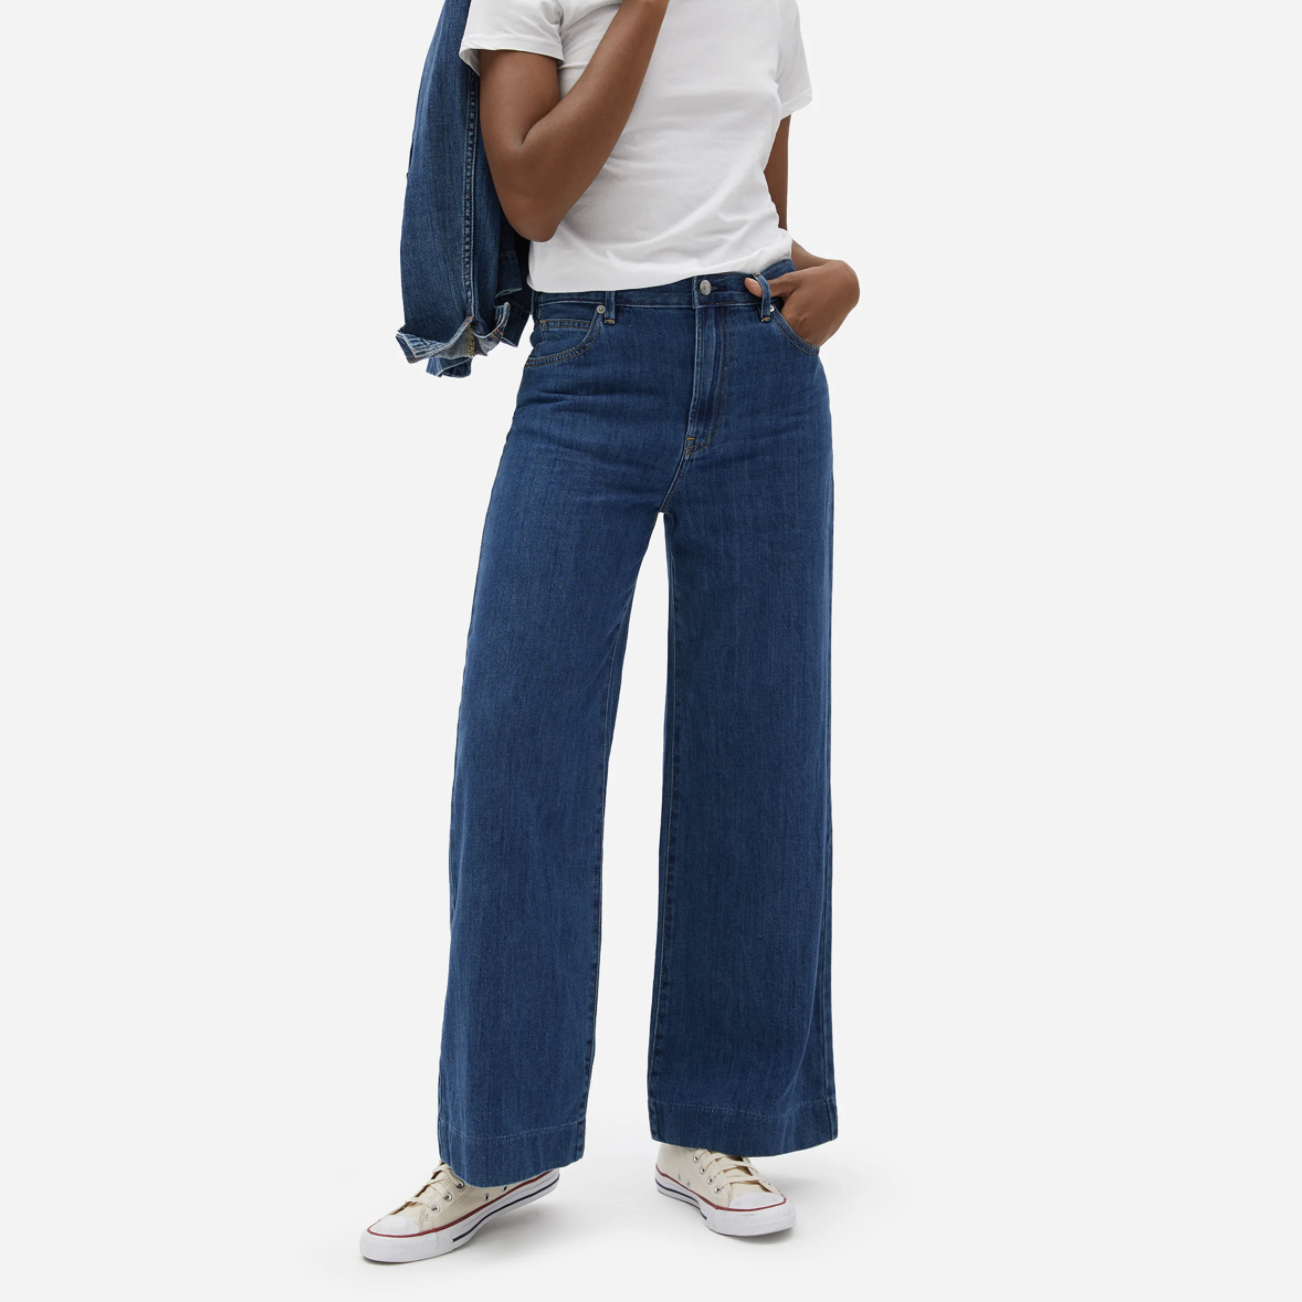 everlane wide leg jeans best jeans for each zodiac sign